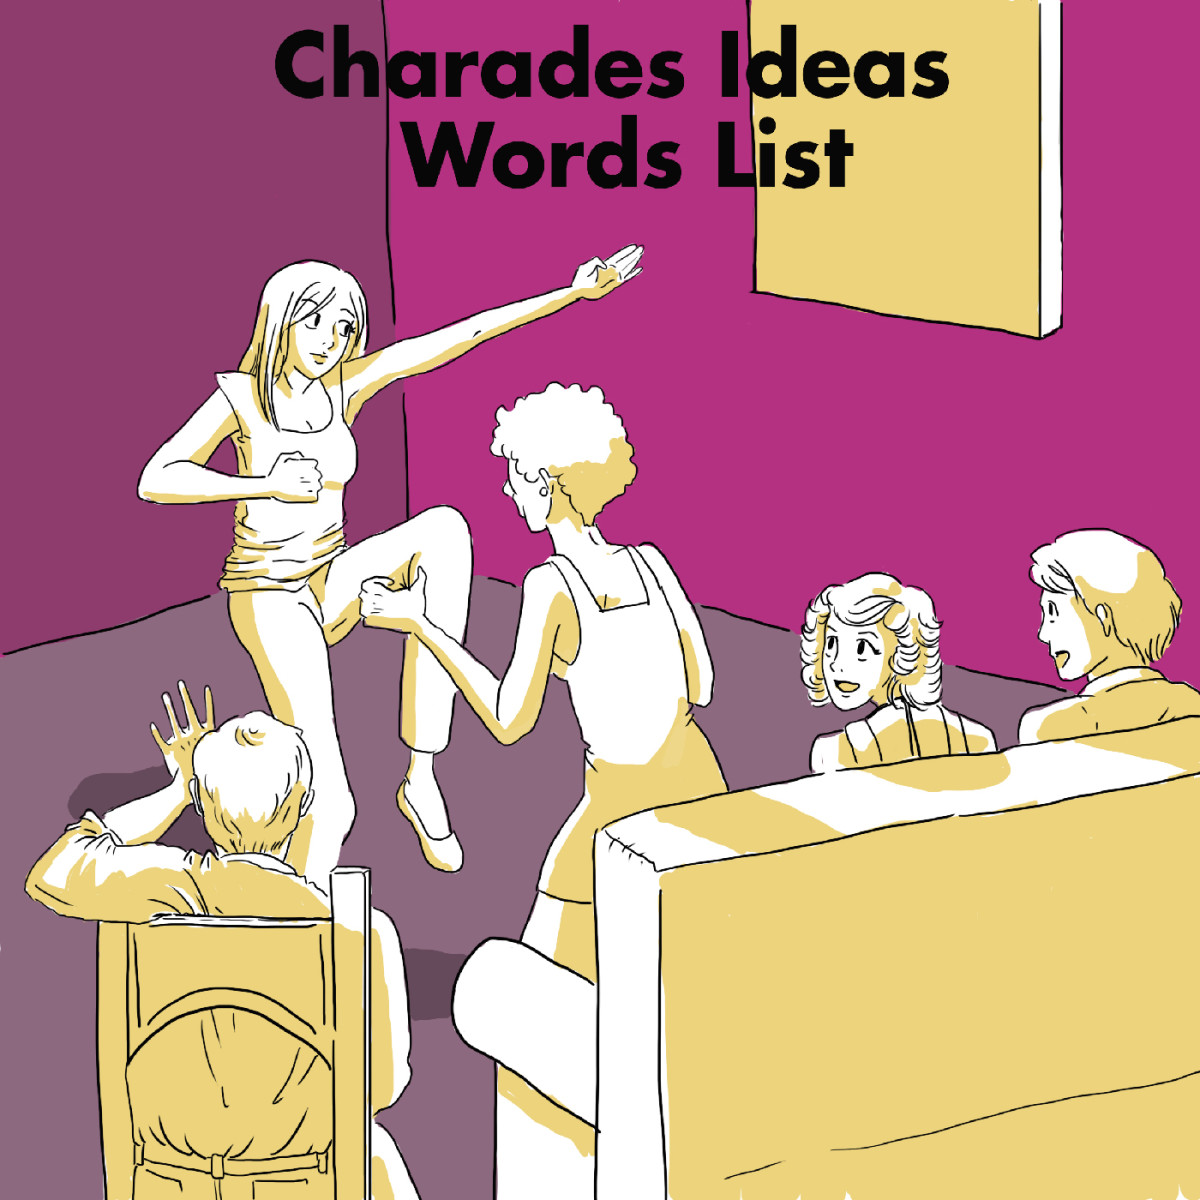 Find lots of ideas for topics and words to use in your next charades game. If you've forgotten the rules to the game, get a refresher here as well!